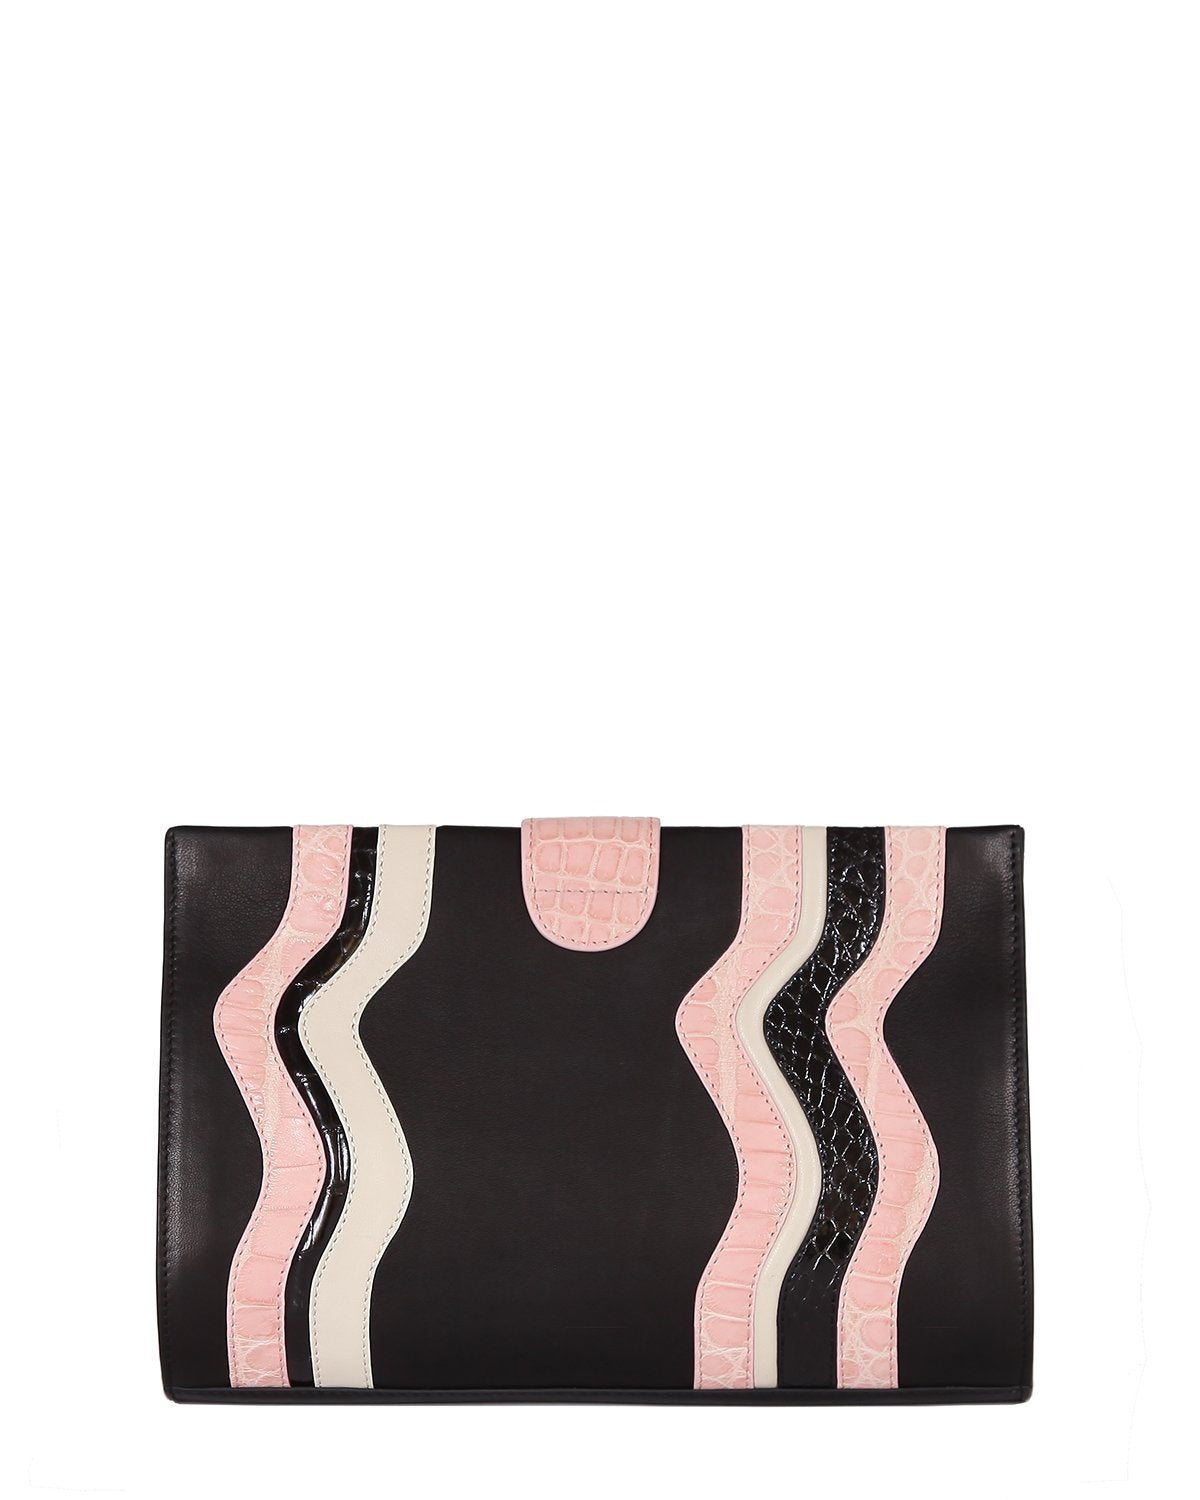 Black Lambskin Clutch with Genuine American Alligator pink and black wavy trims back view